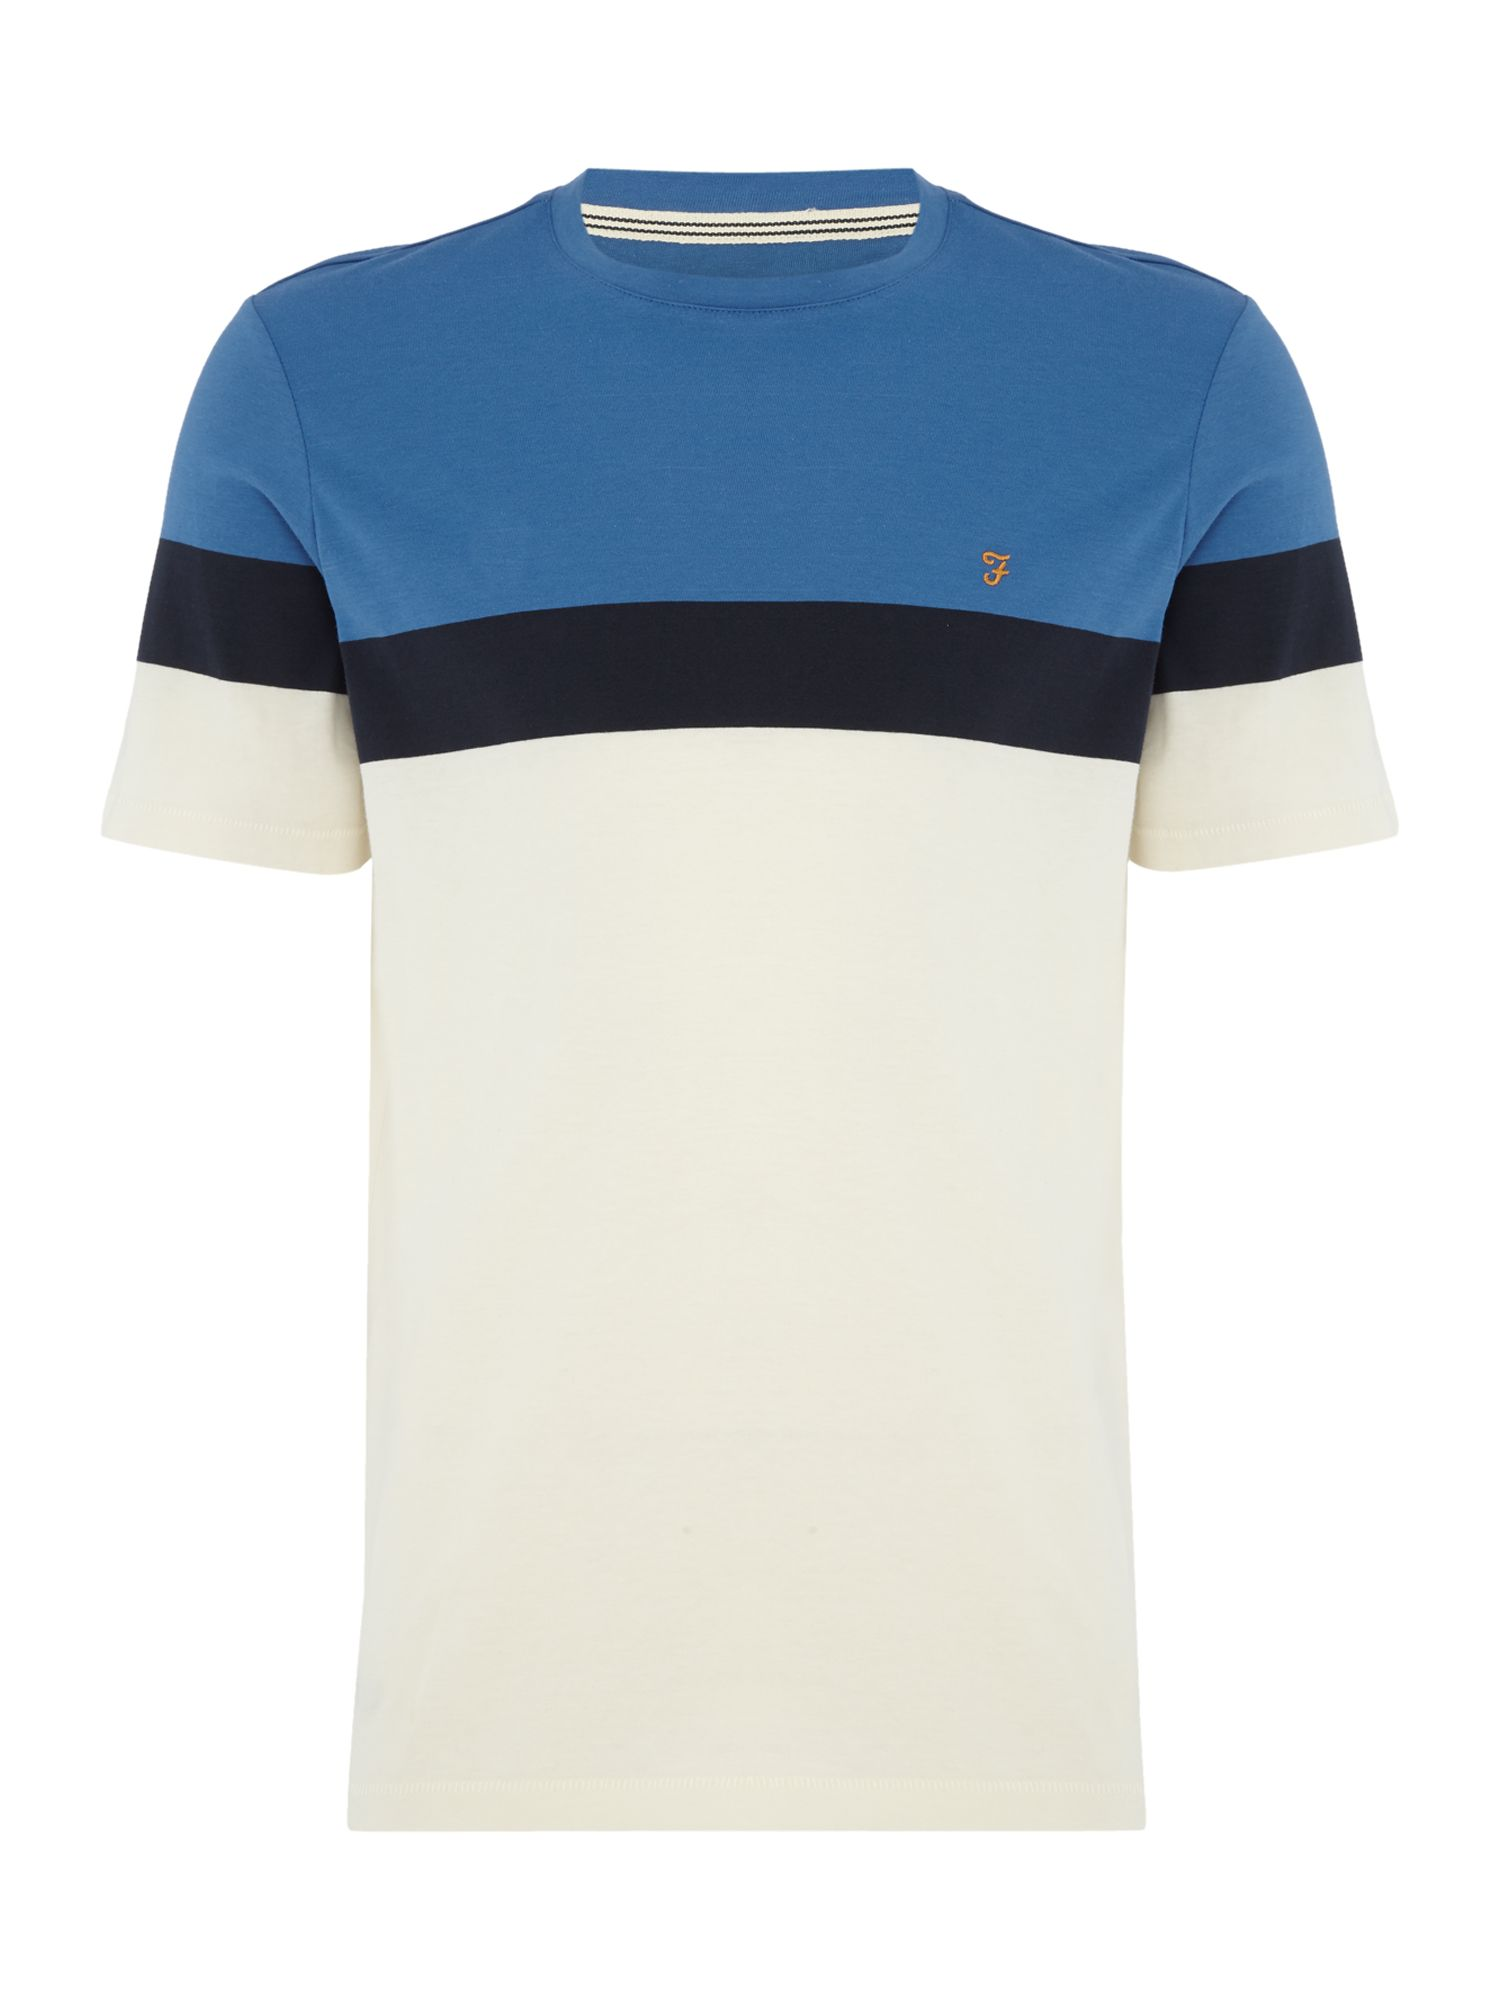 Men's Farah Harlyn Stripe Tshirt, Bright Blue